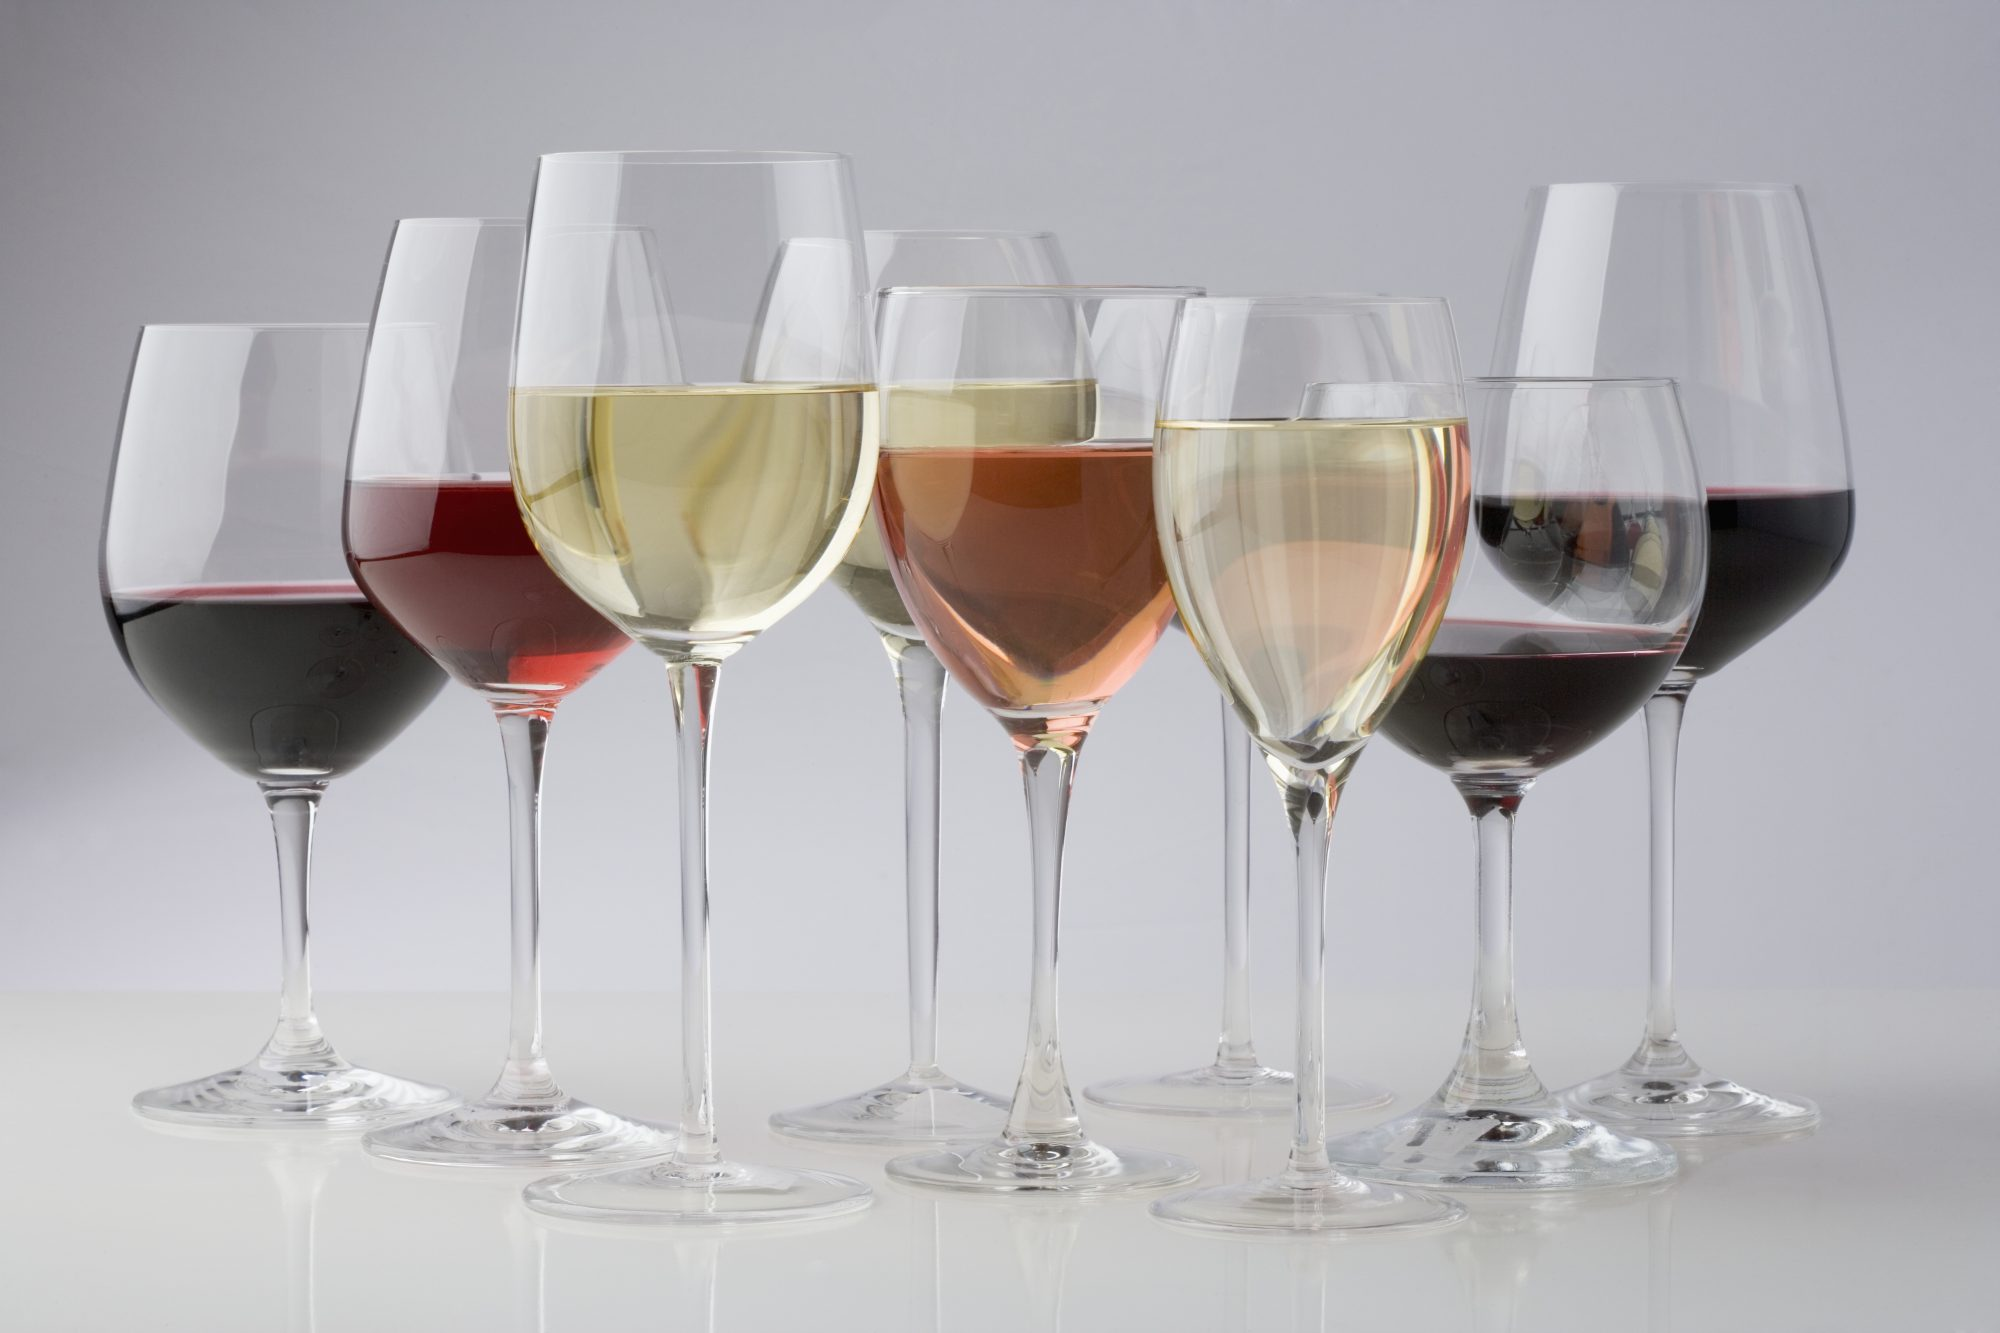 different types of wine glasses paired with wine